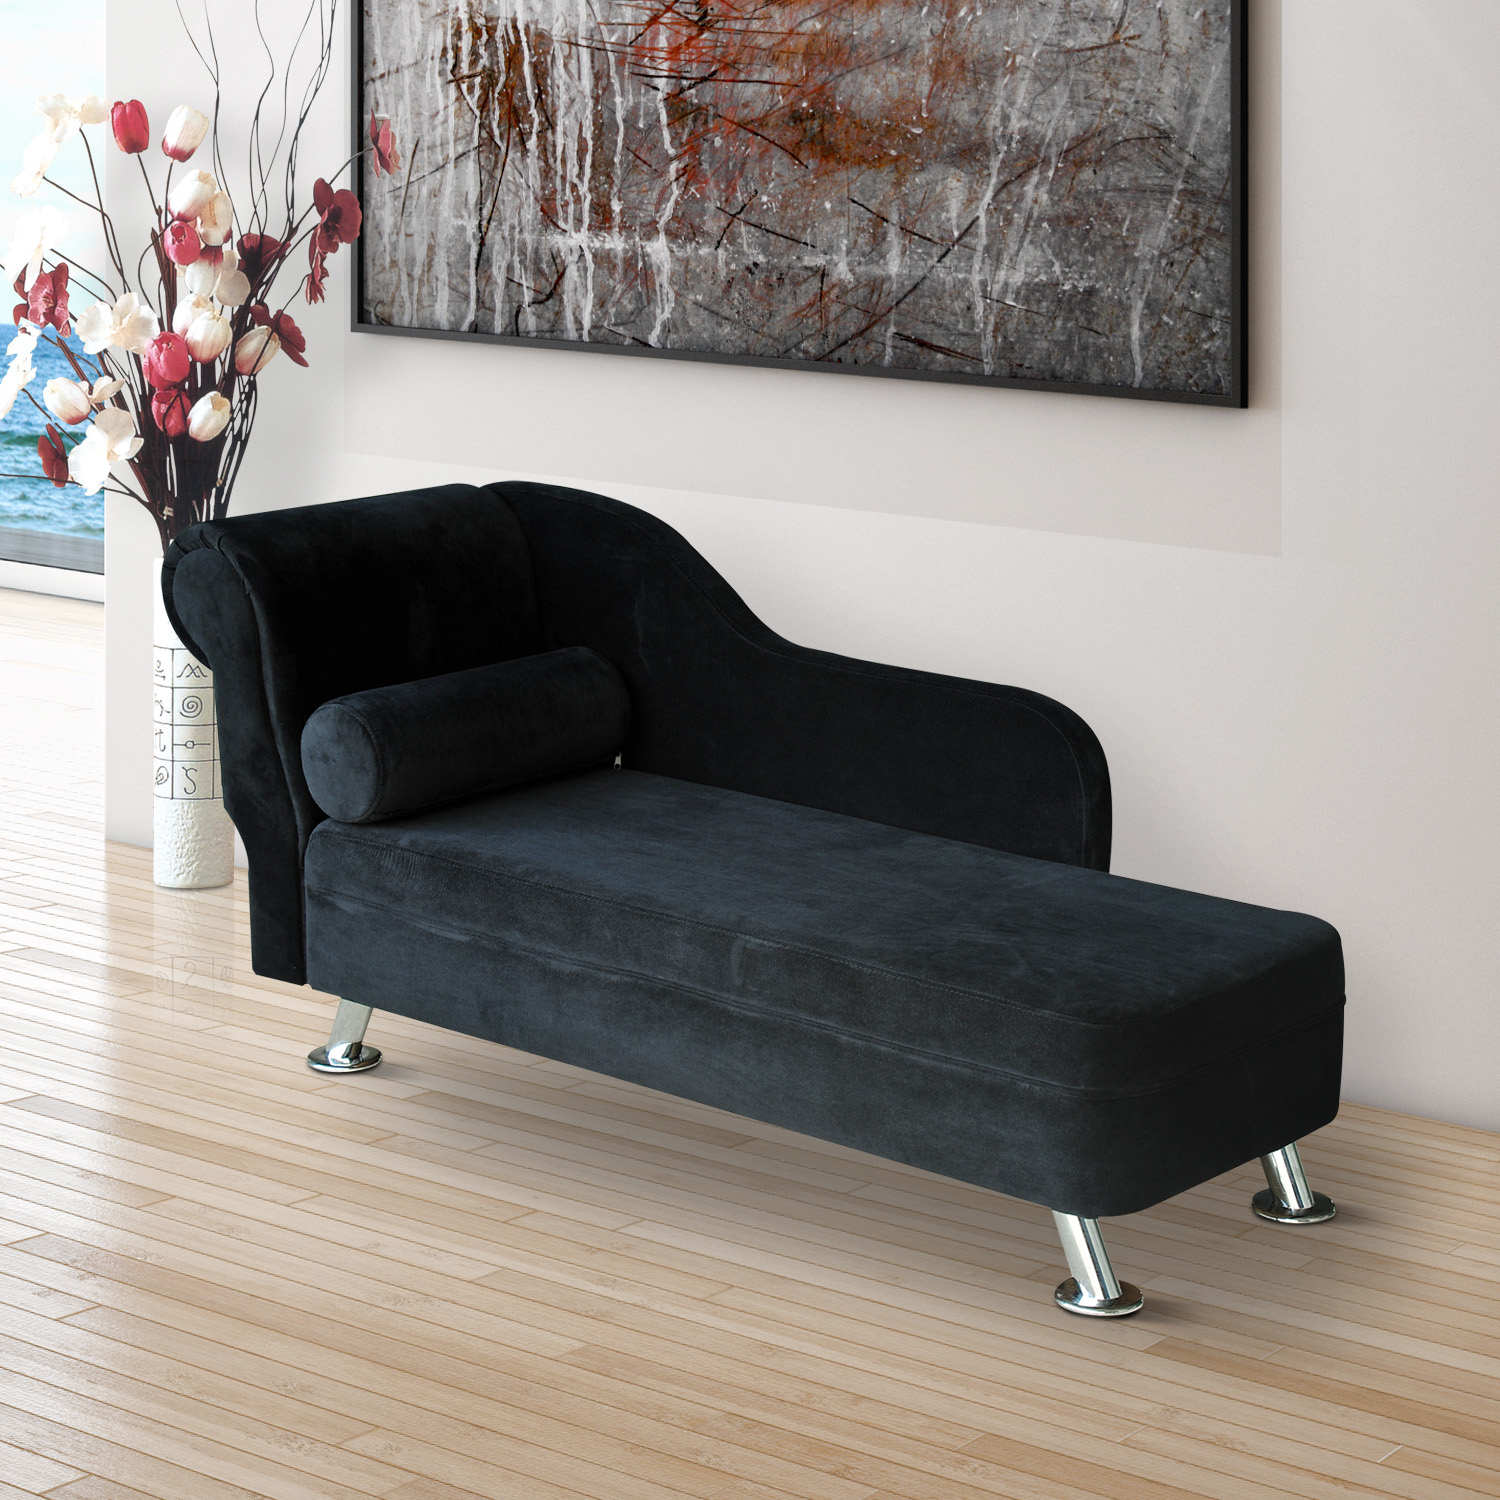 Sofa Beds & Chaise Lounges